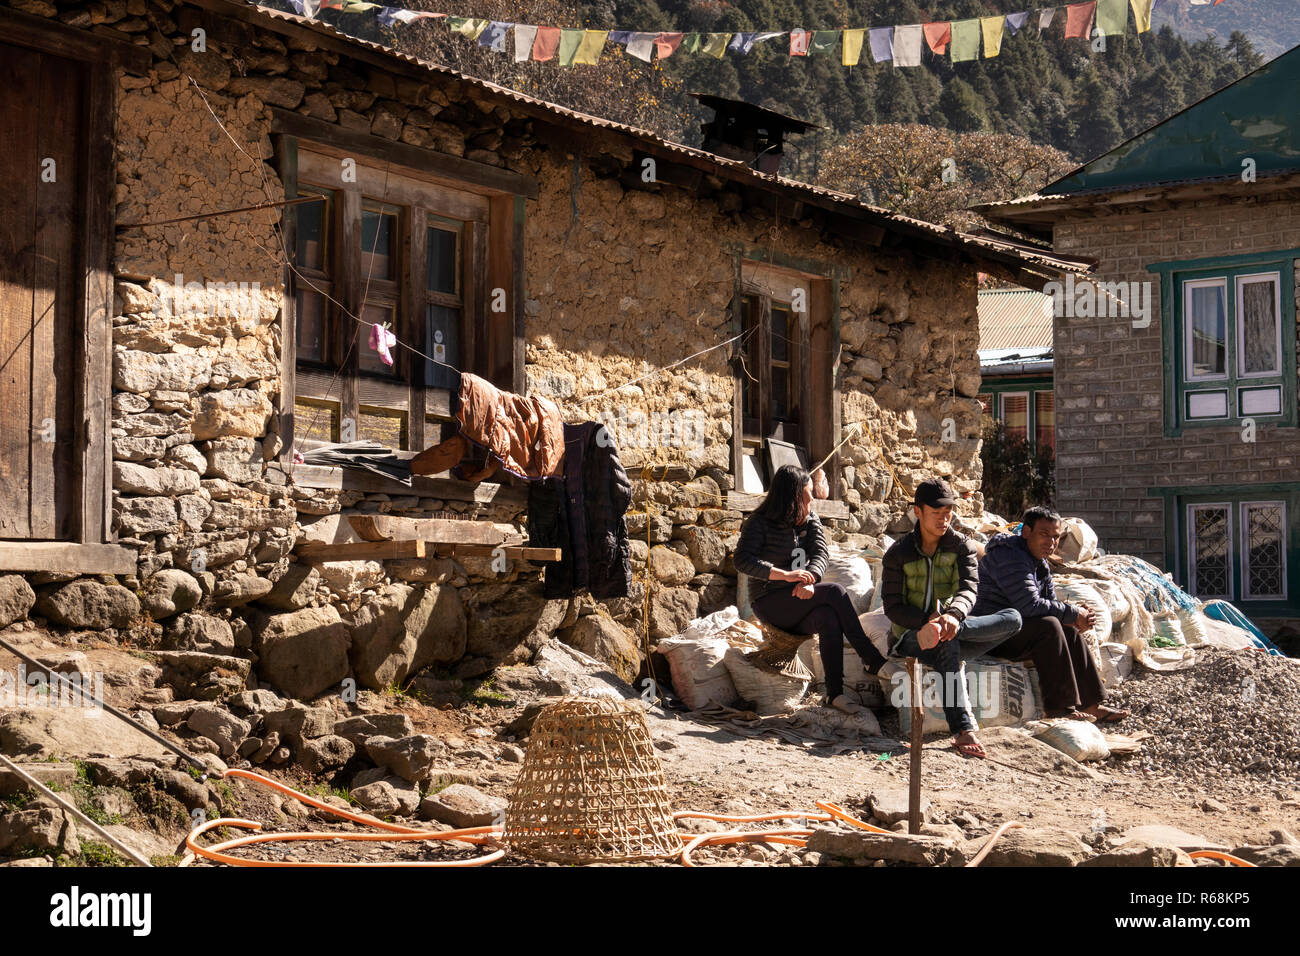 Nepal, Lukla, people sat outside traditional old, stone-built house in middle of village - Stock Image